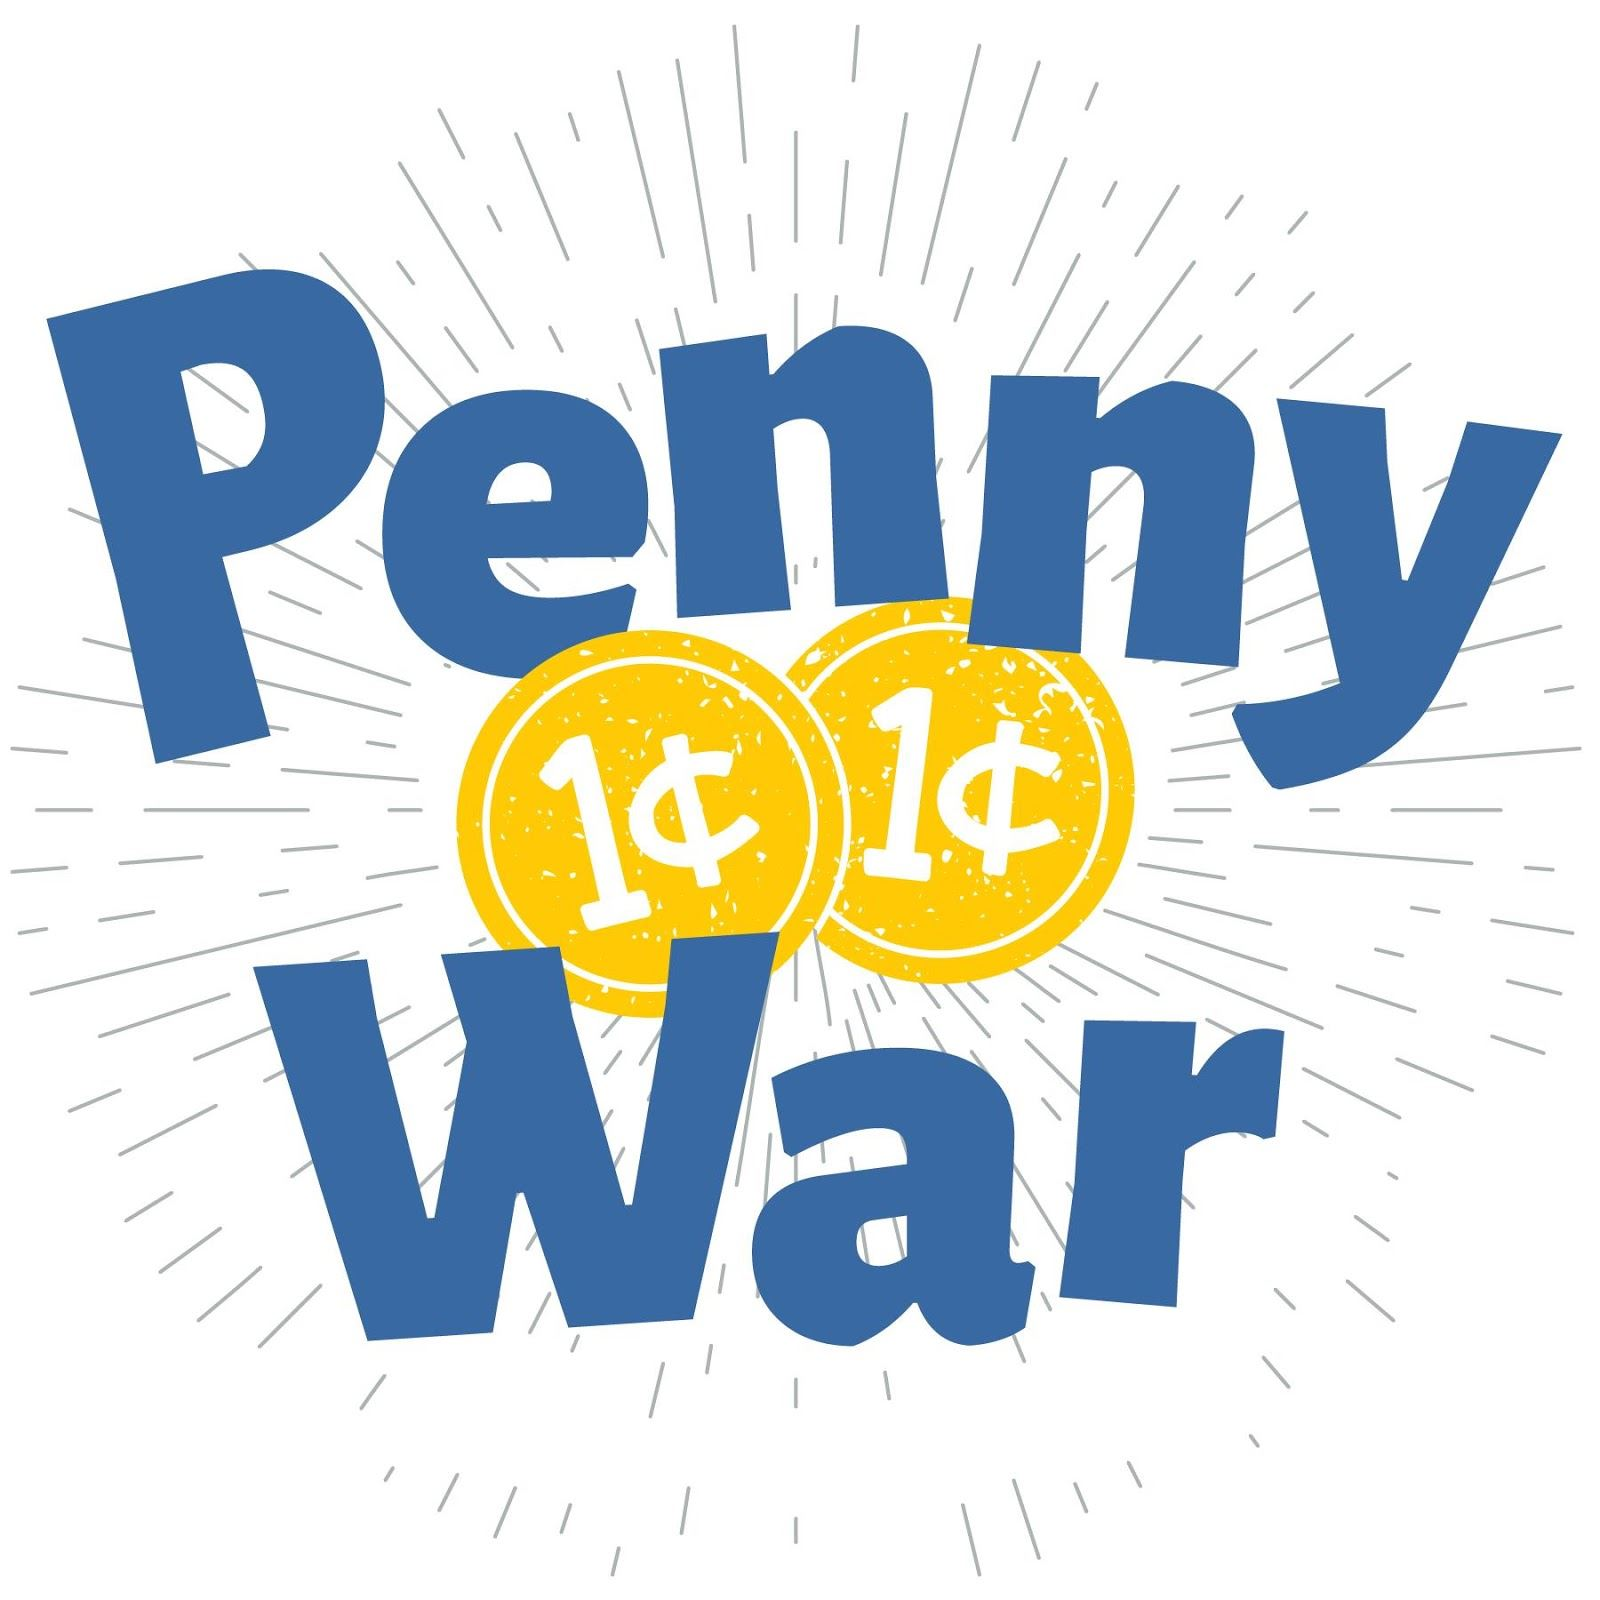 October 8, 2020 | Penny Wars for United Way of the Midlands Campaign